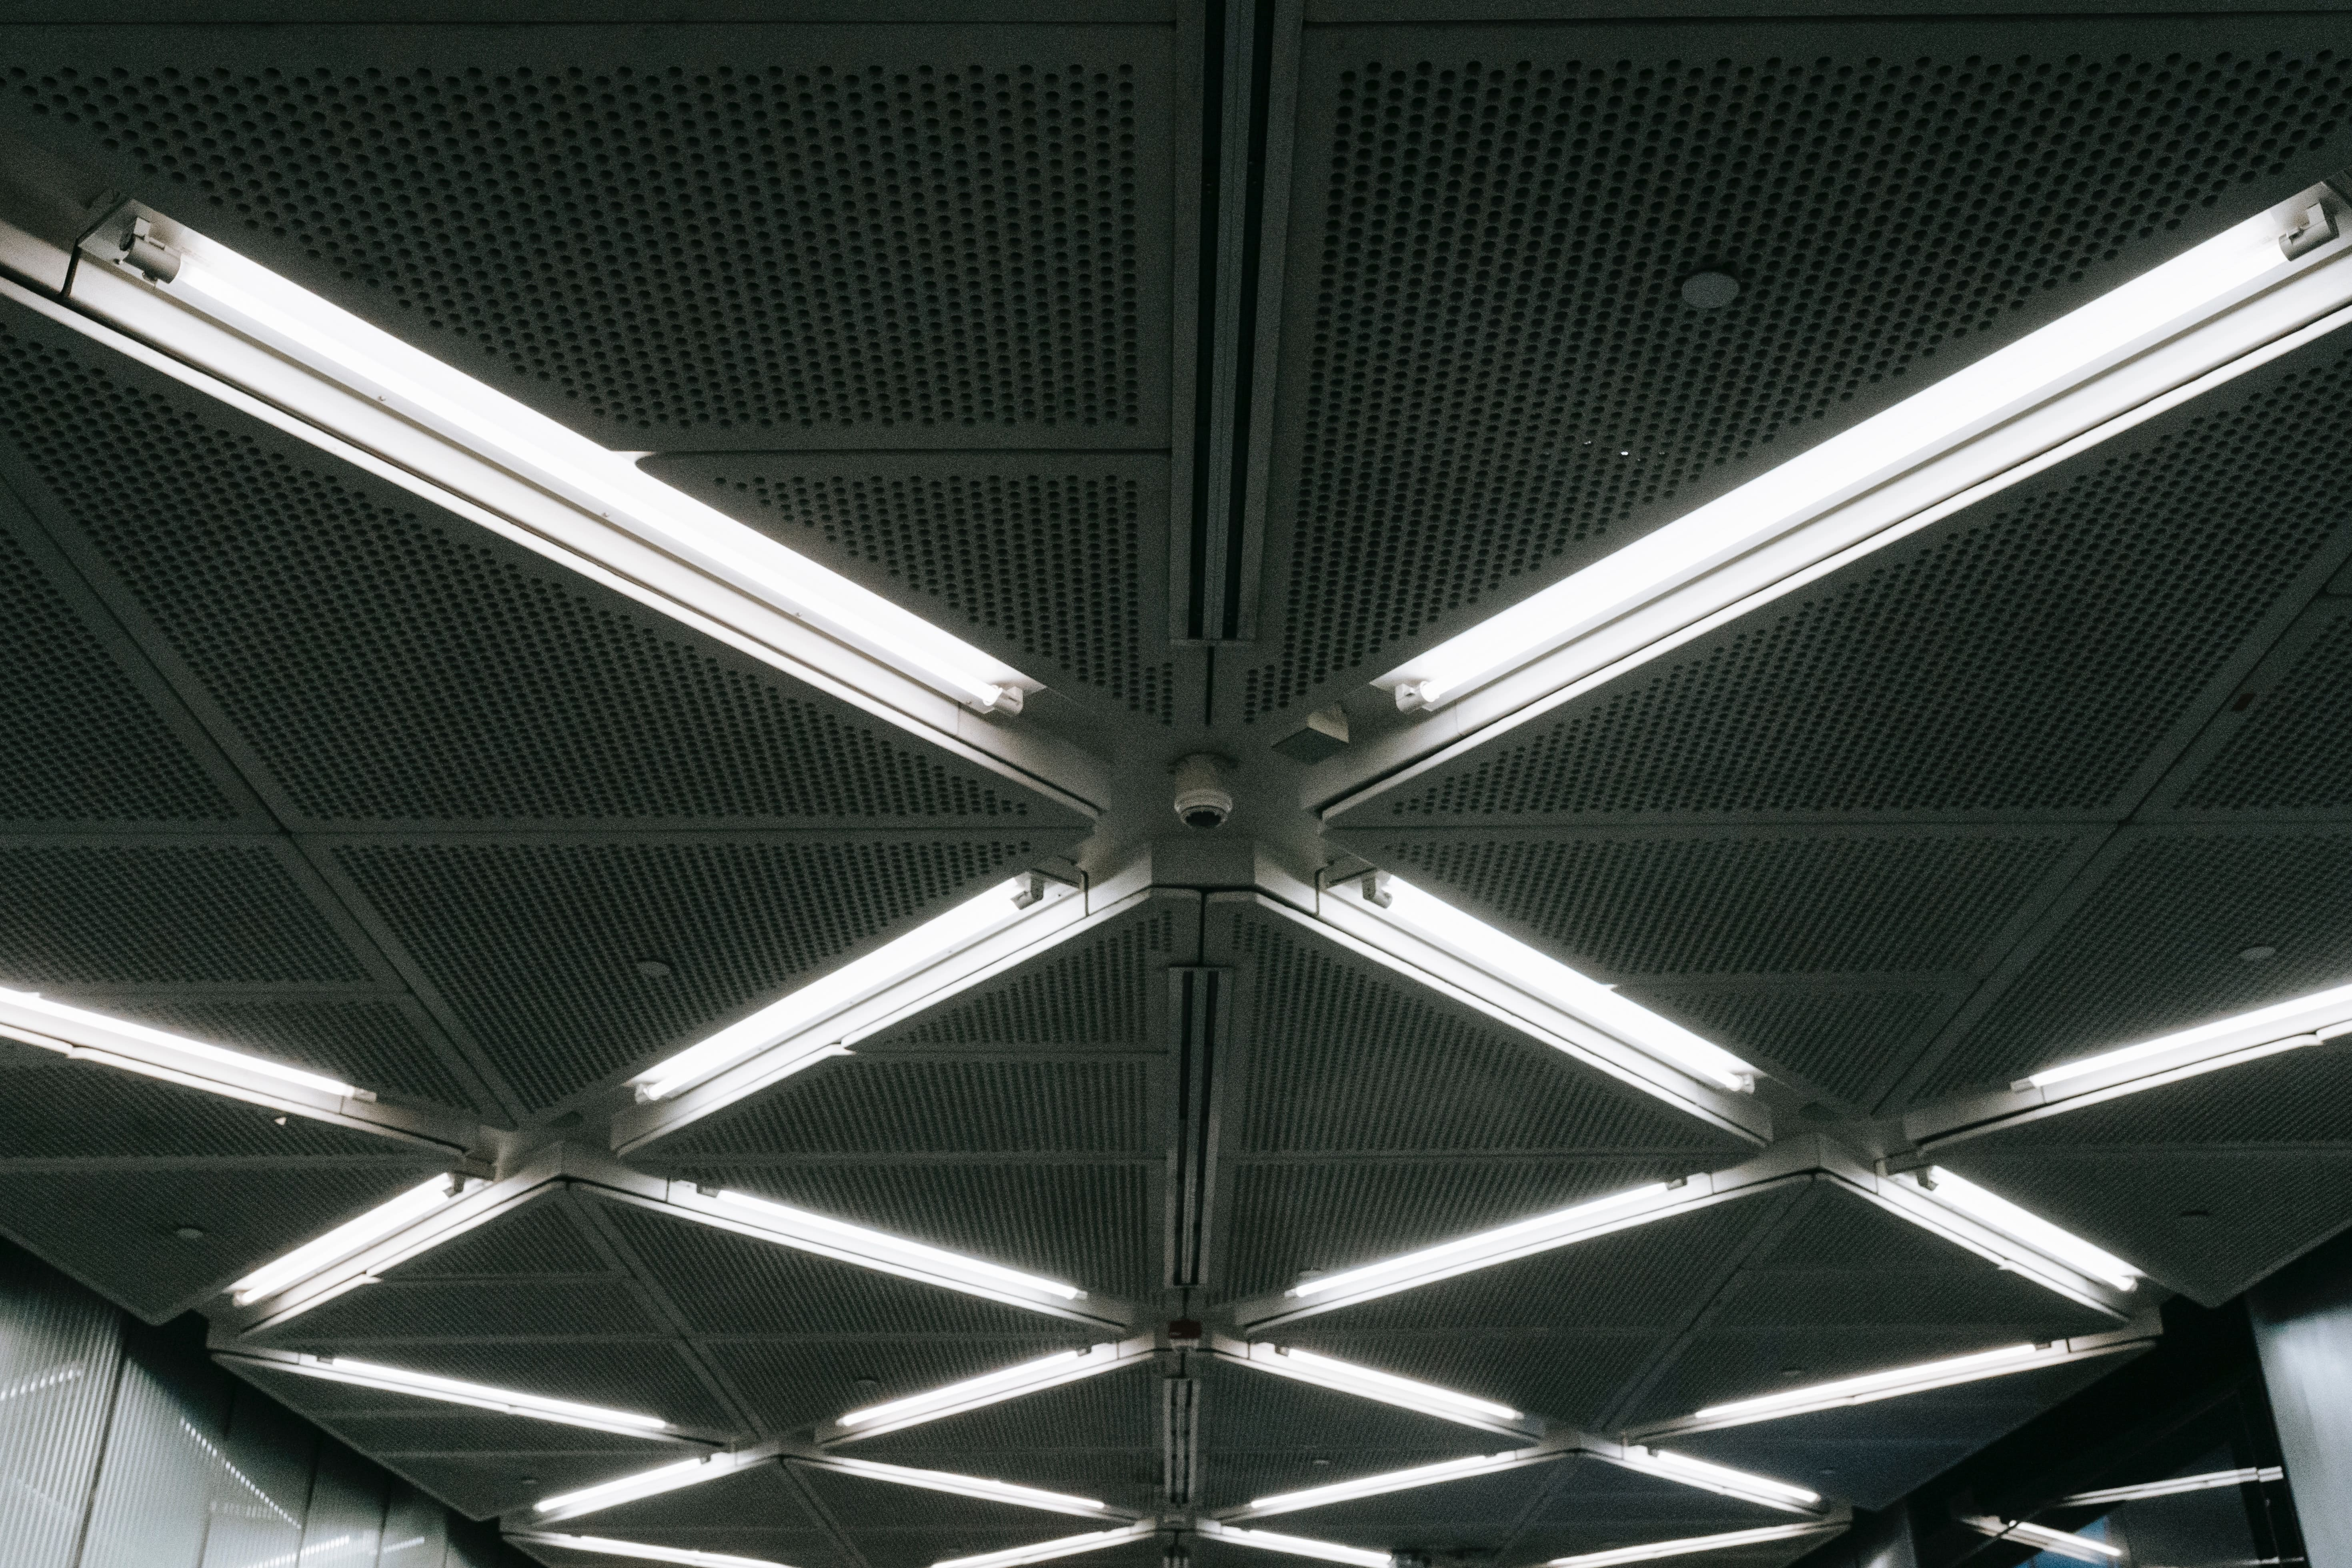 Commercial LED tube lights in an industrial building